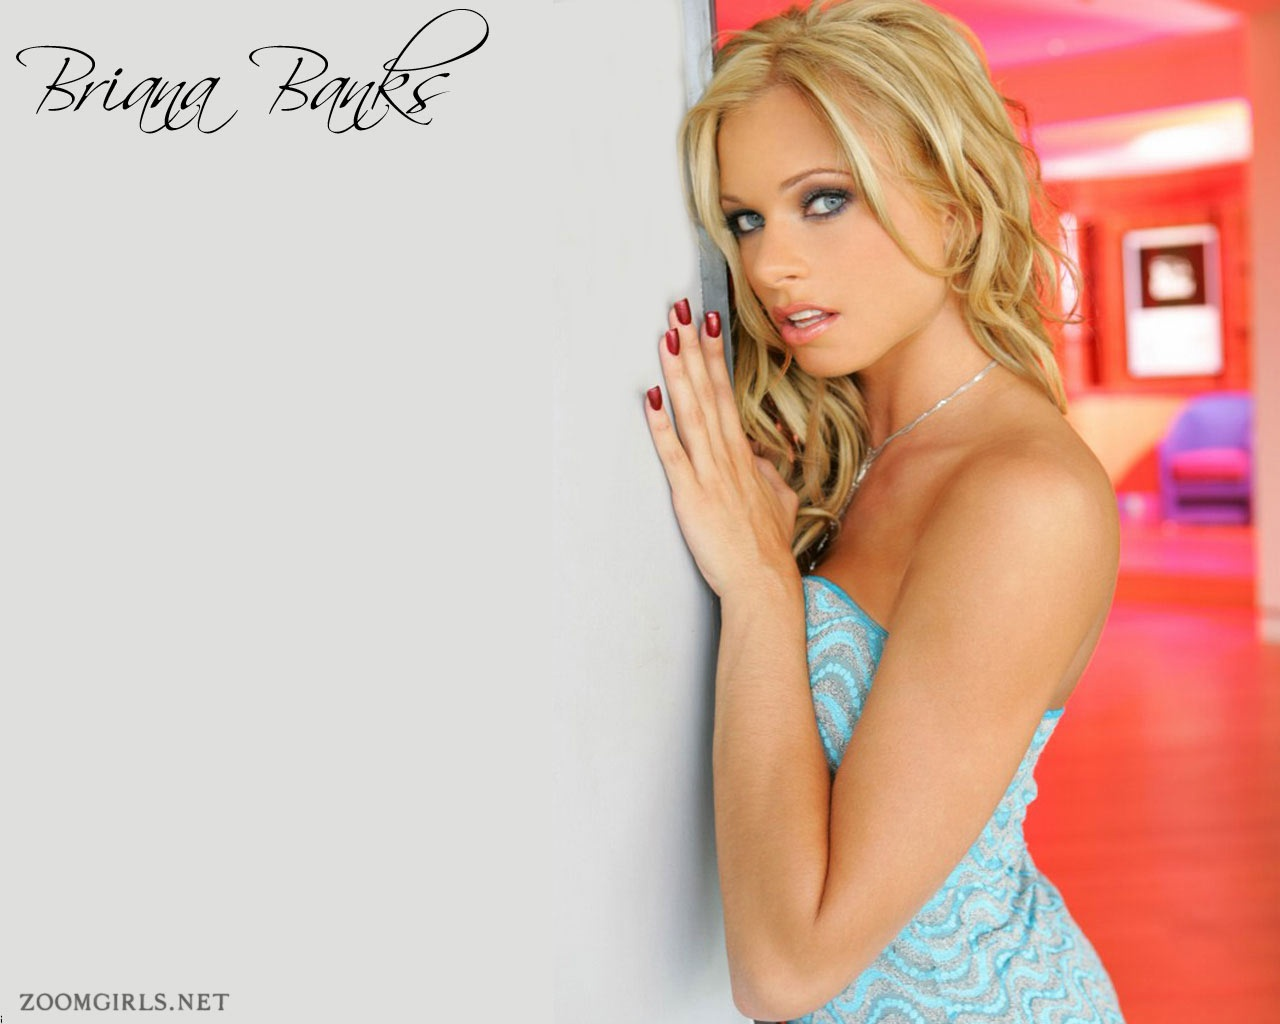 briana banks sexy portrait photo wallpaper 1280x1024 nude models and